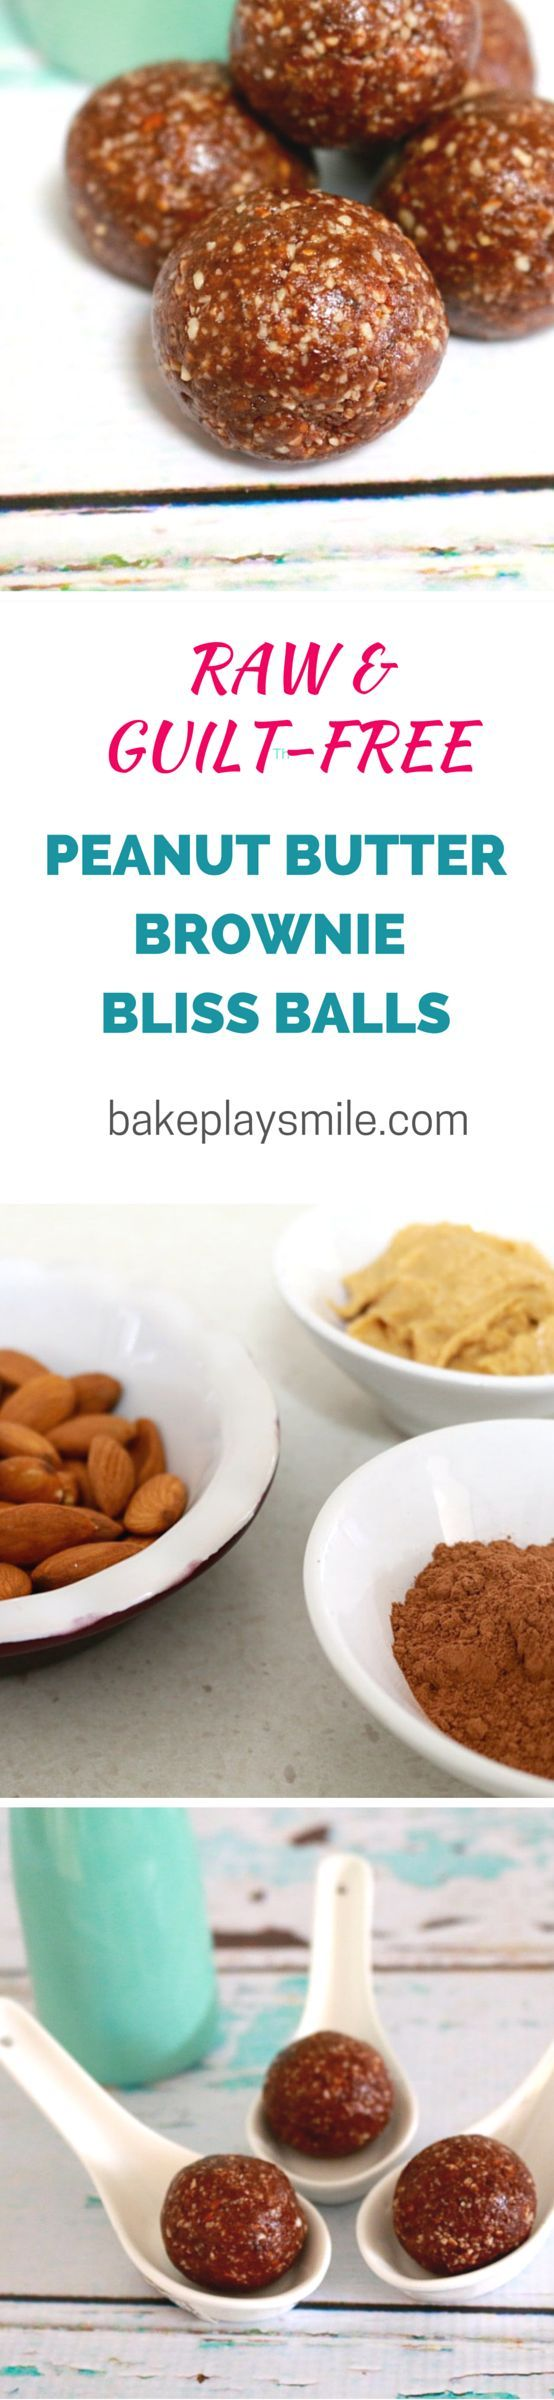 This is my favourite bliss ball recipe of all-time. It tastes just like a peanut butter brownie... but it's totally healthy!